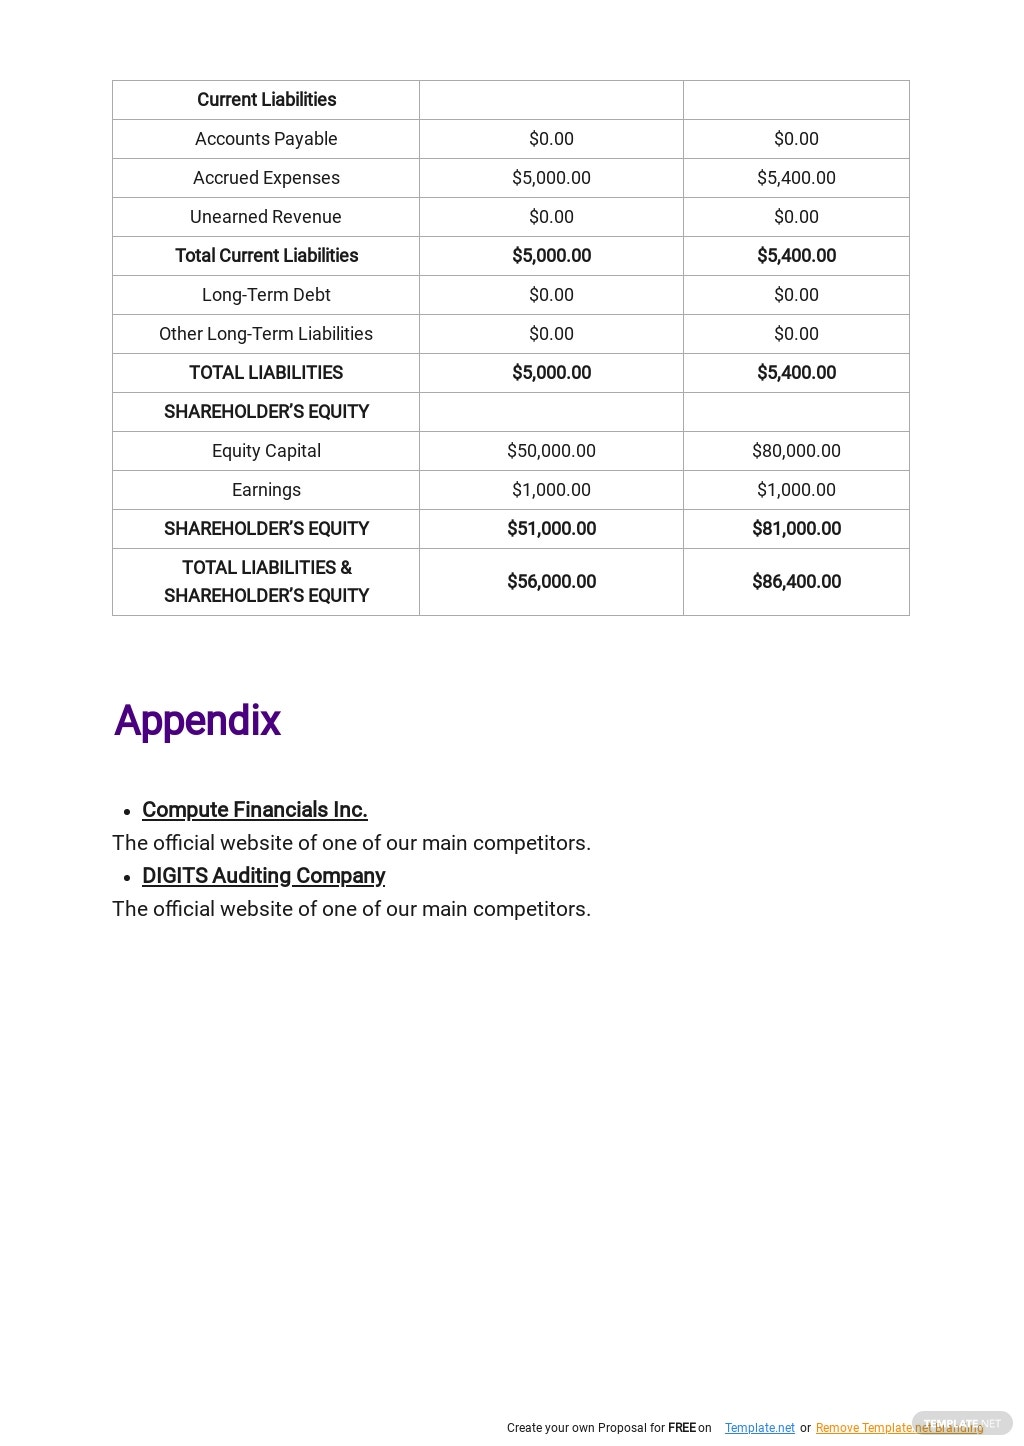 Auditing and Consulting Business Plan Template 8.jpe